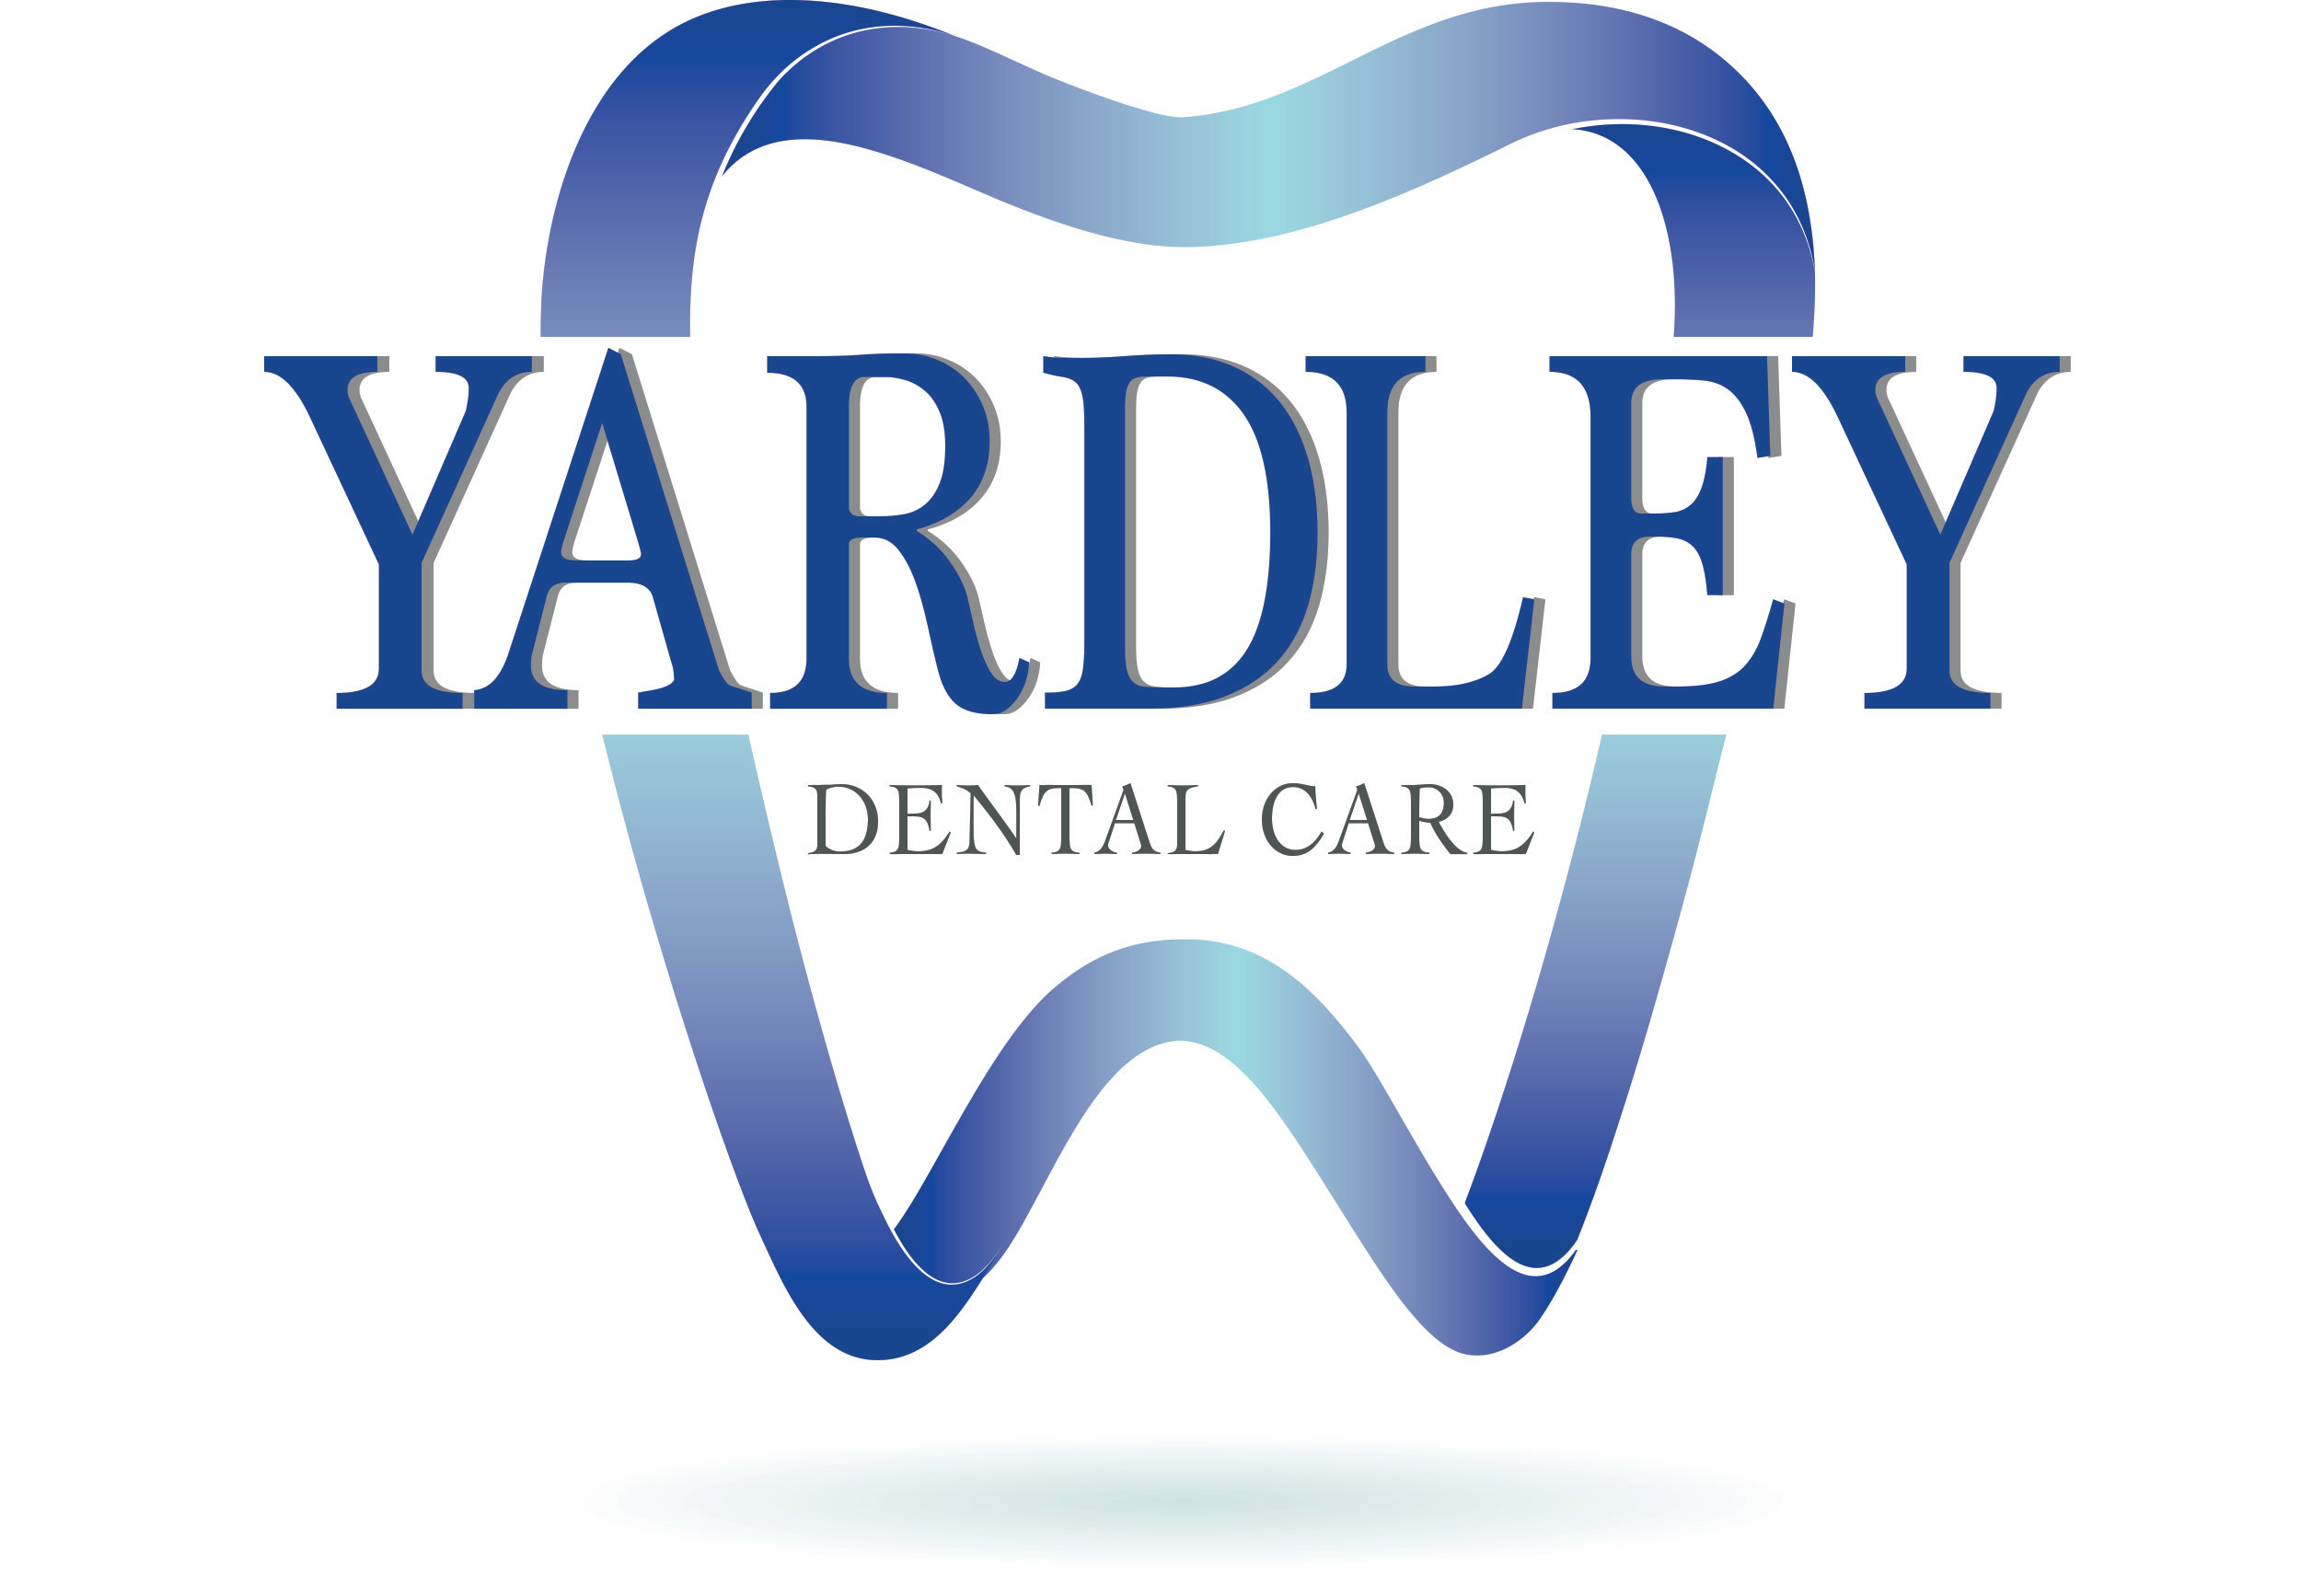 YARDLEY DENTAL CARE FNL LOGO